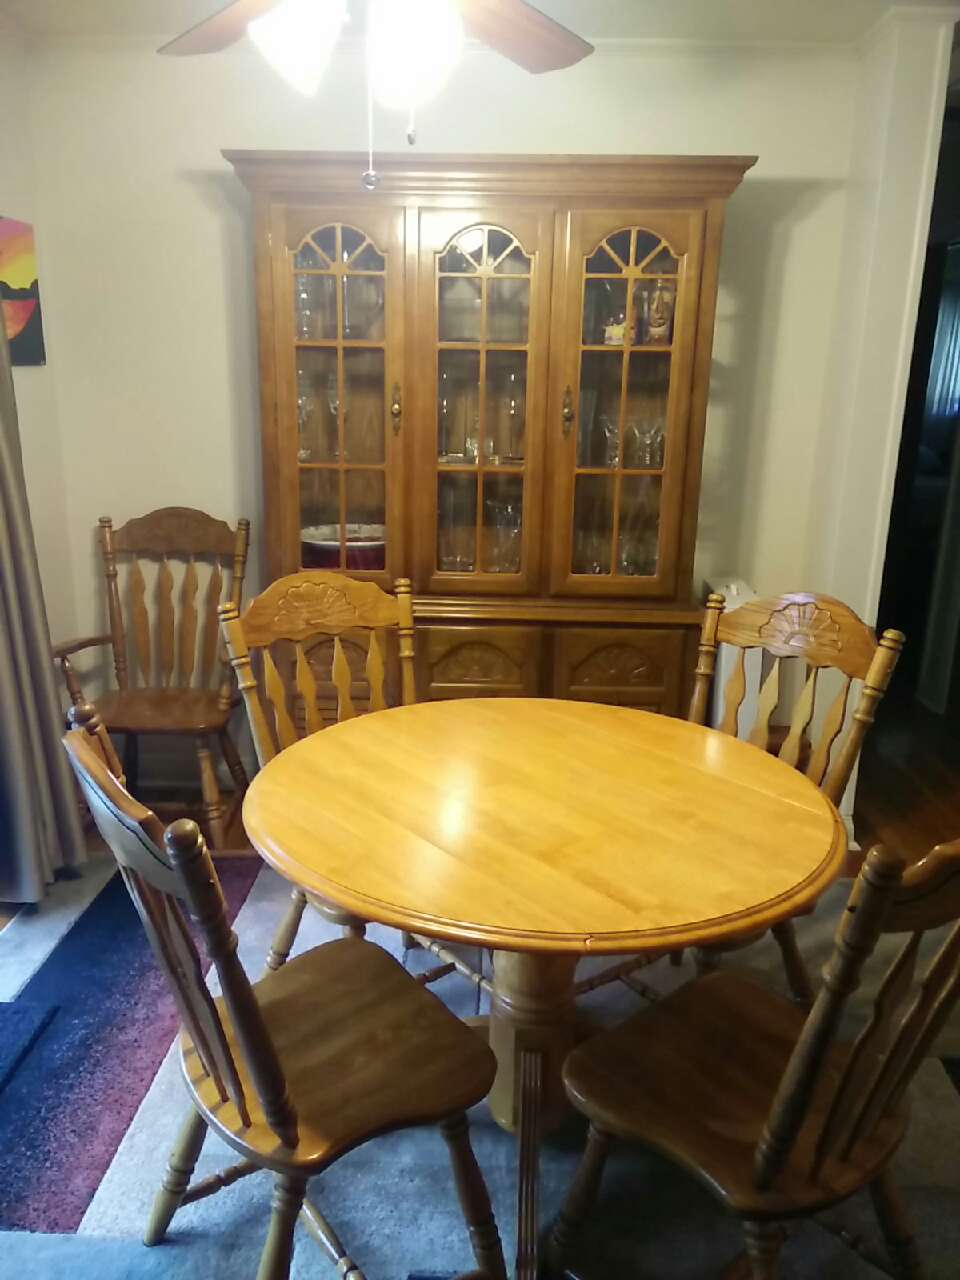 letgo dining room table 5 chairs in greentree pa